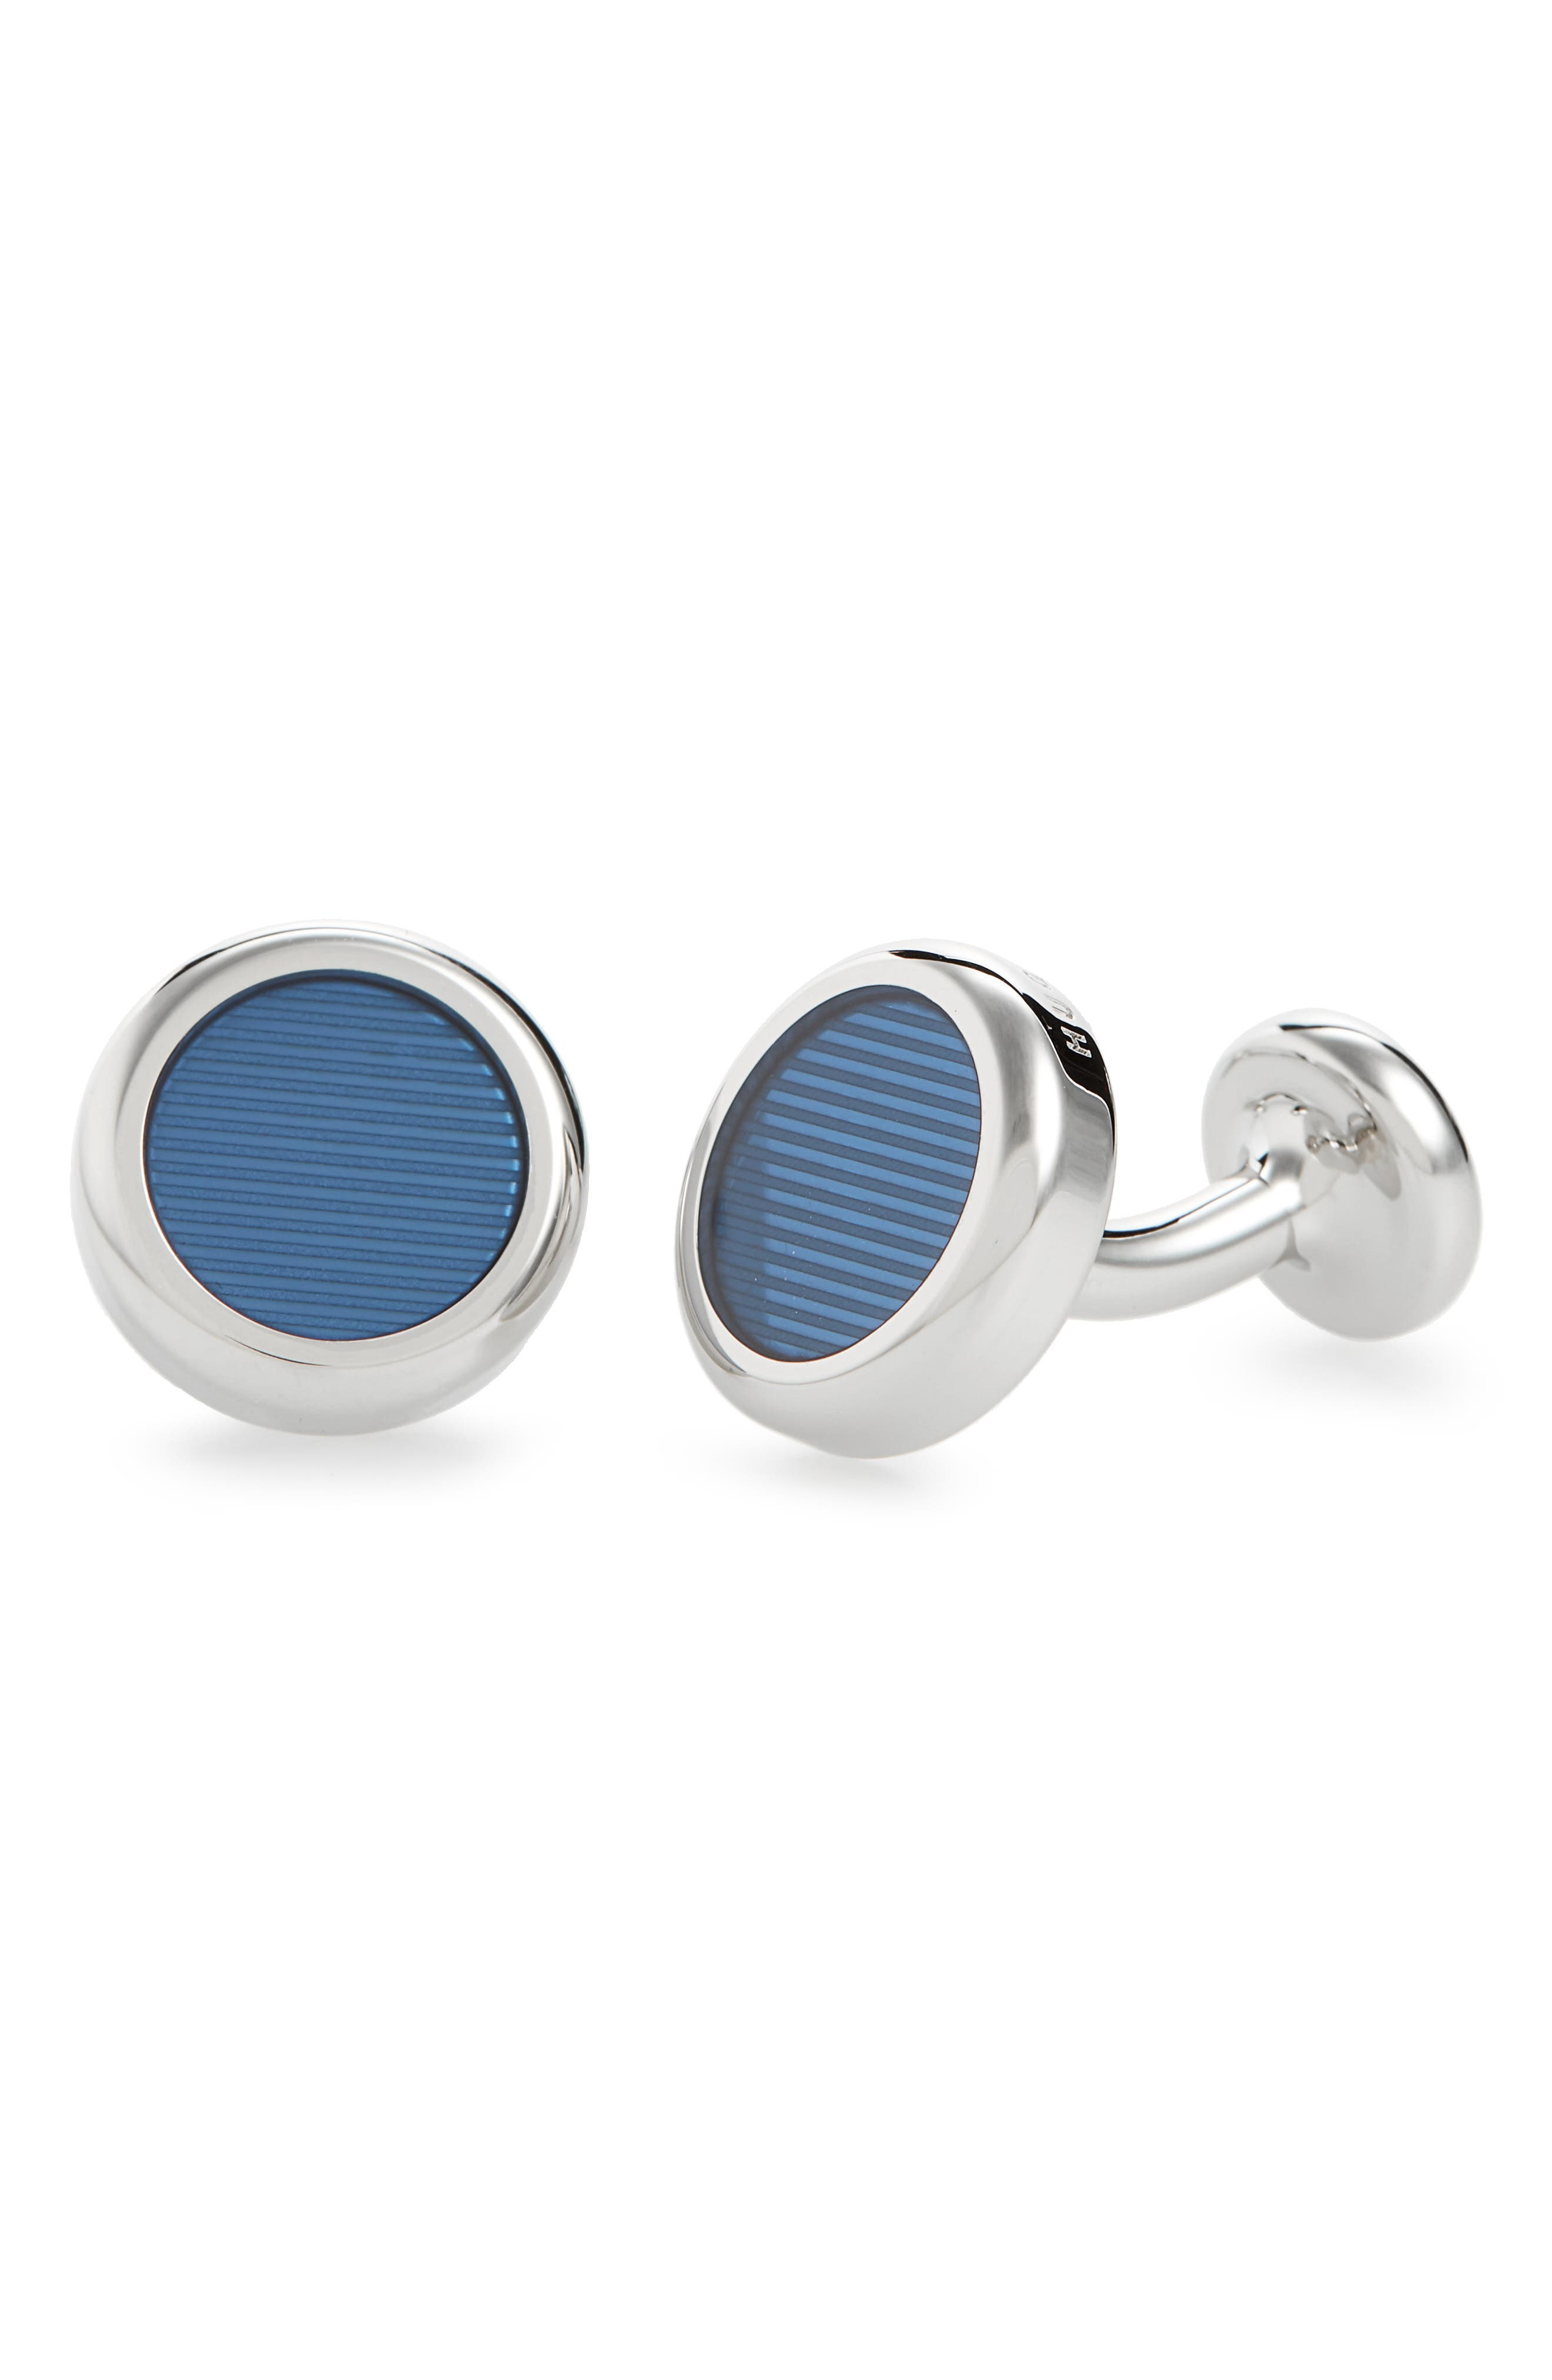 Gil Round Cuff Links,                             Main thumbnail 1, color,                             Blue